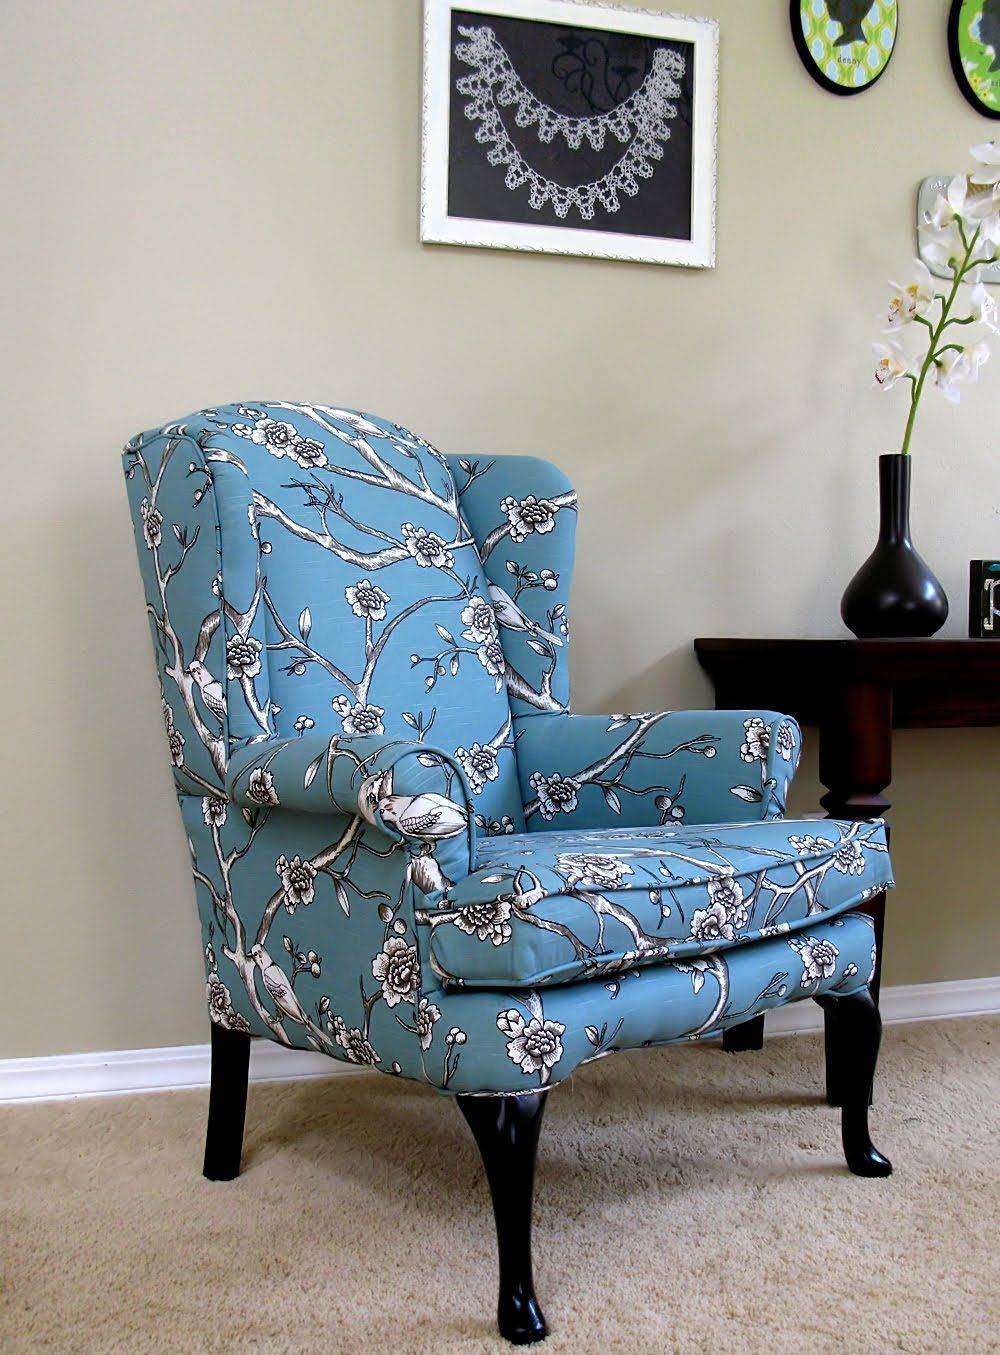 10 Joyous Simple Ideas Upholstery Bench Reading Nooks Upholstery Projects Life Upholstery How To Upholstery Chair Reupholstery Chair Upholstery Wingback Chair